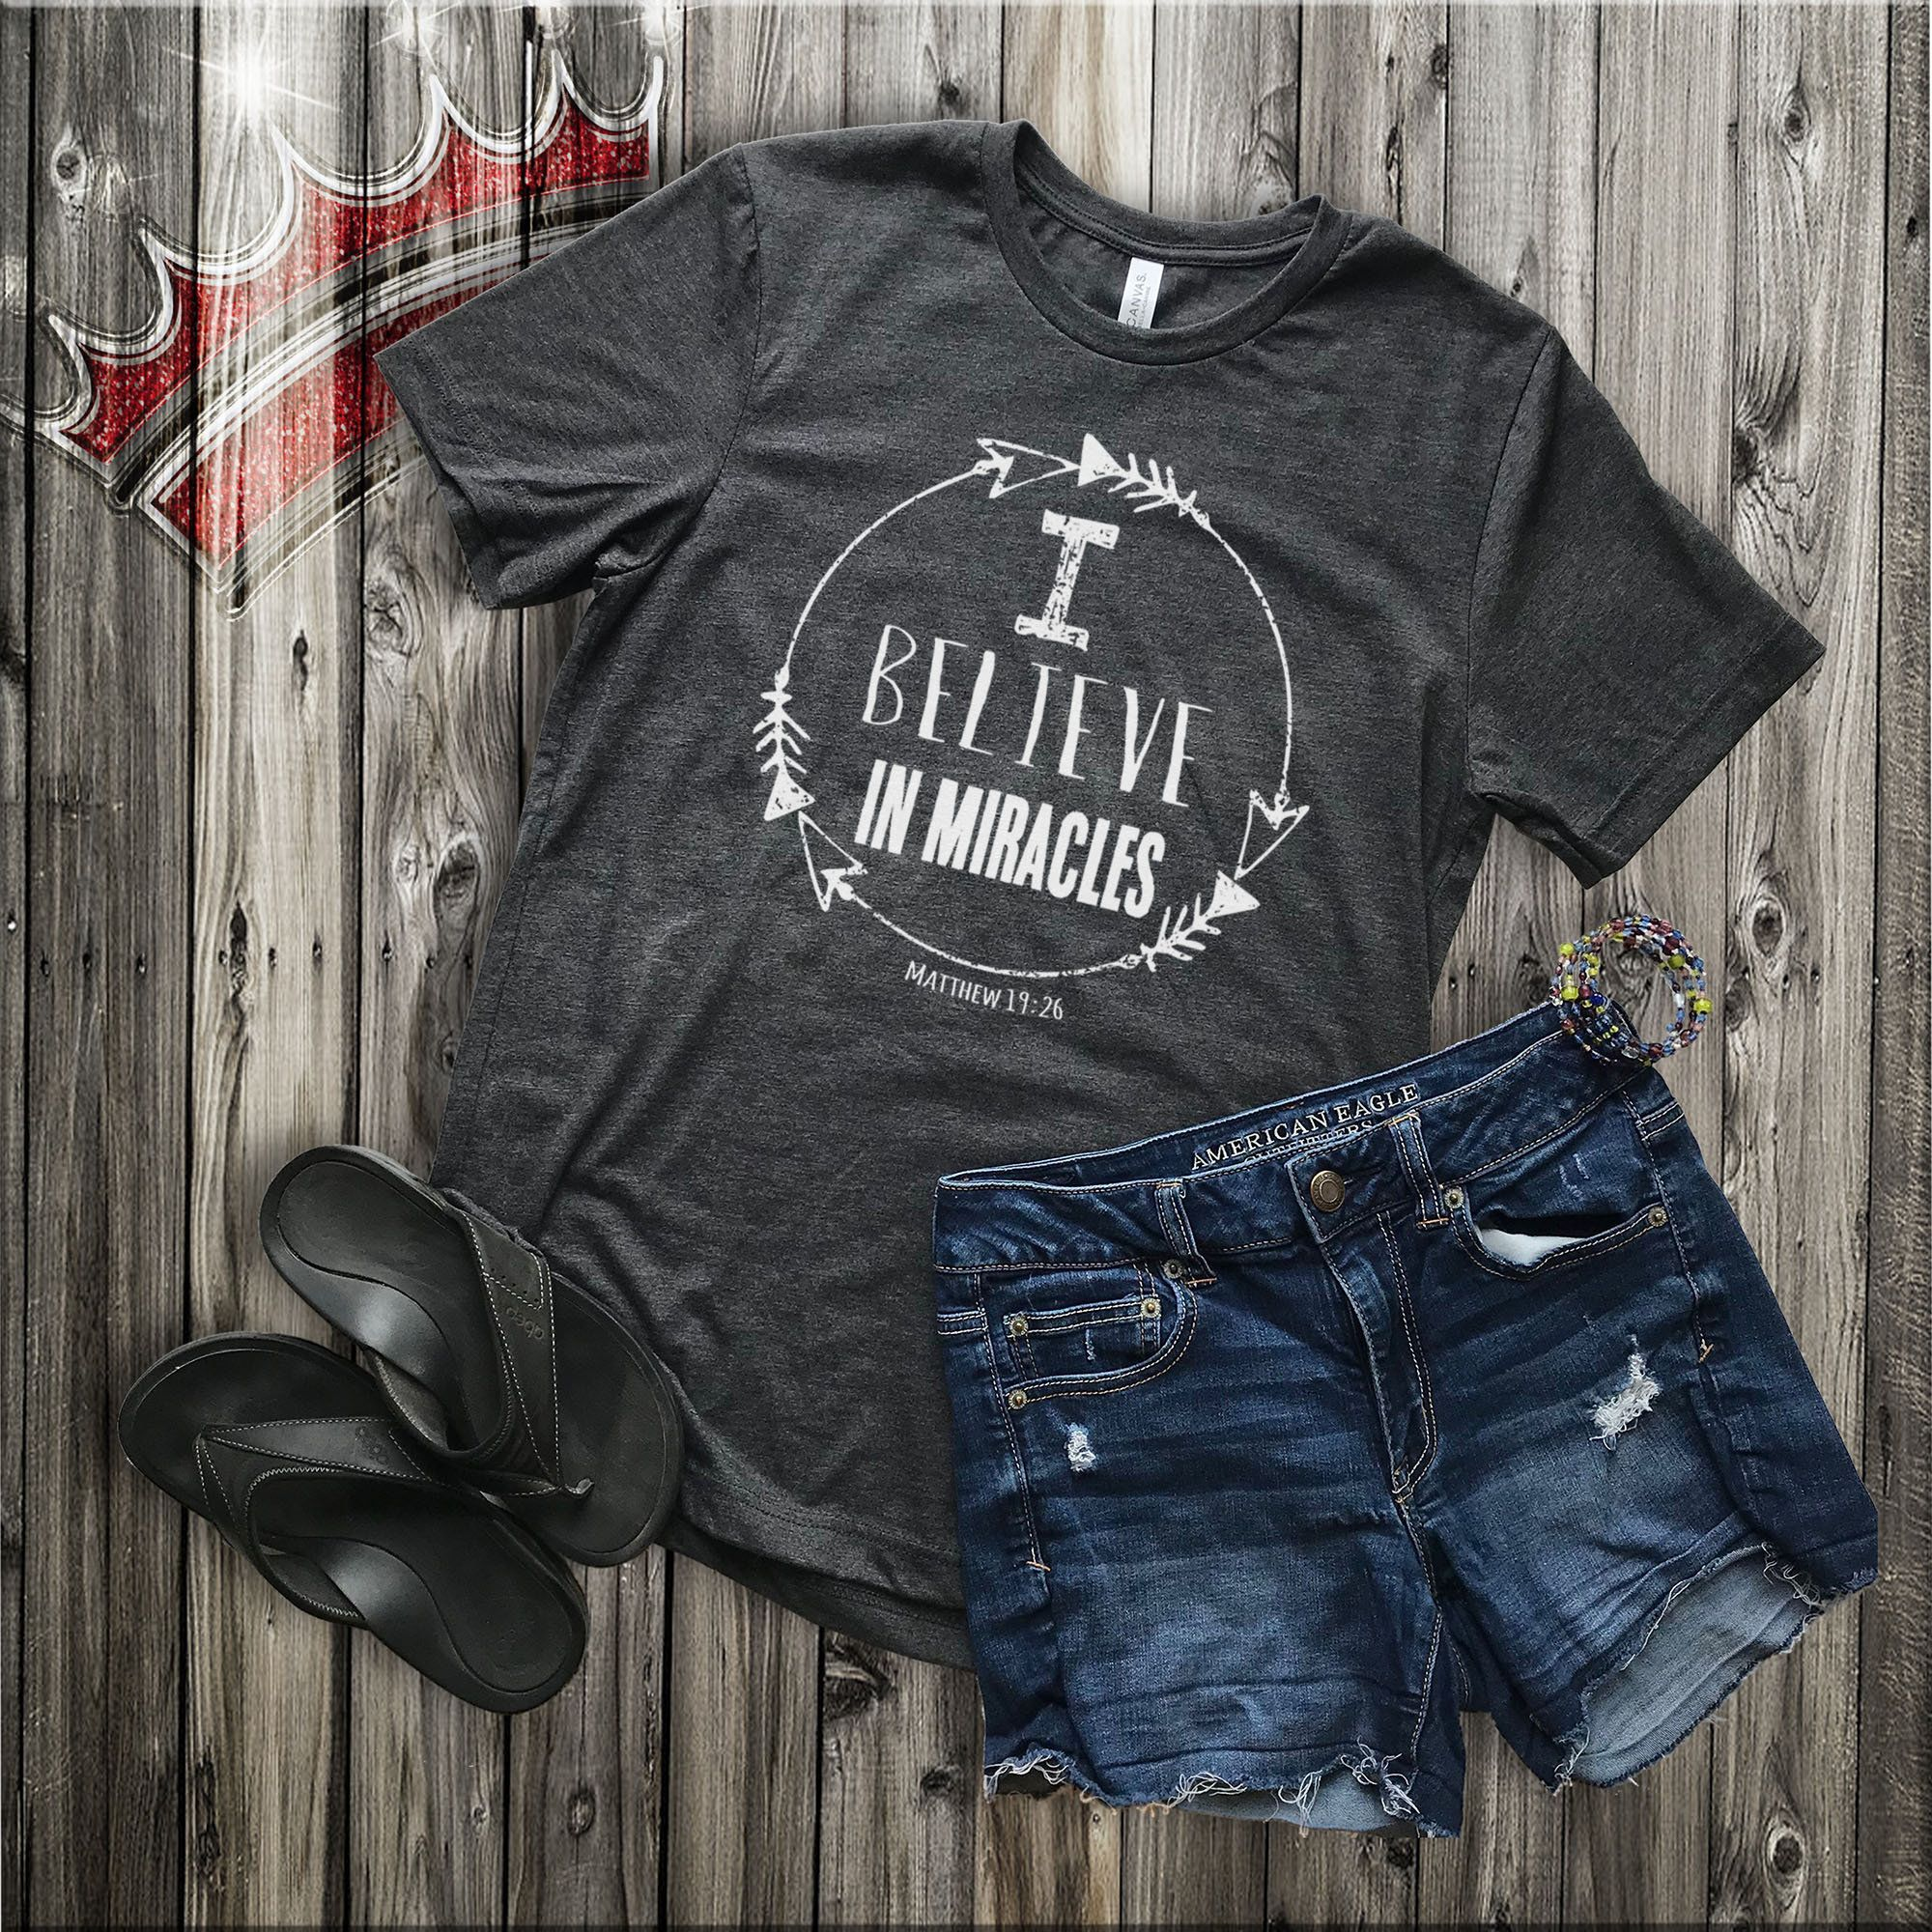 80156a7abceb5 Christian T Shirts/ T shirts/ Crew Neck/ Jesus Shirt/ Scripture Shirt/  Believe in Miracles/ Tshirt/ Sick friend gift/ Vintage shirt